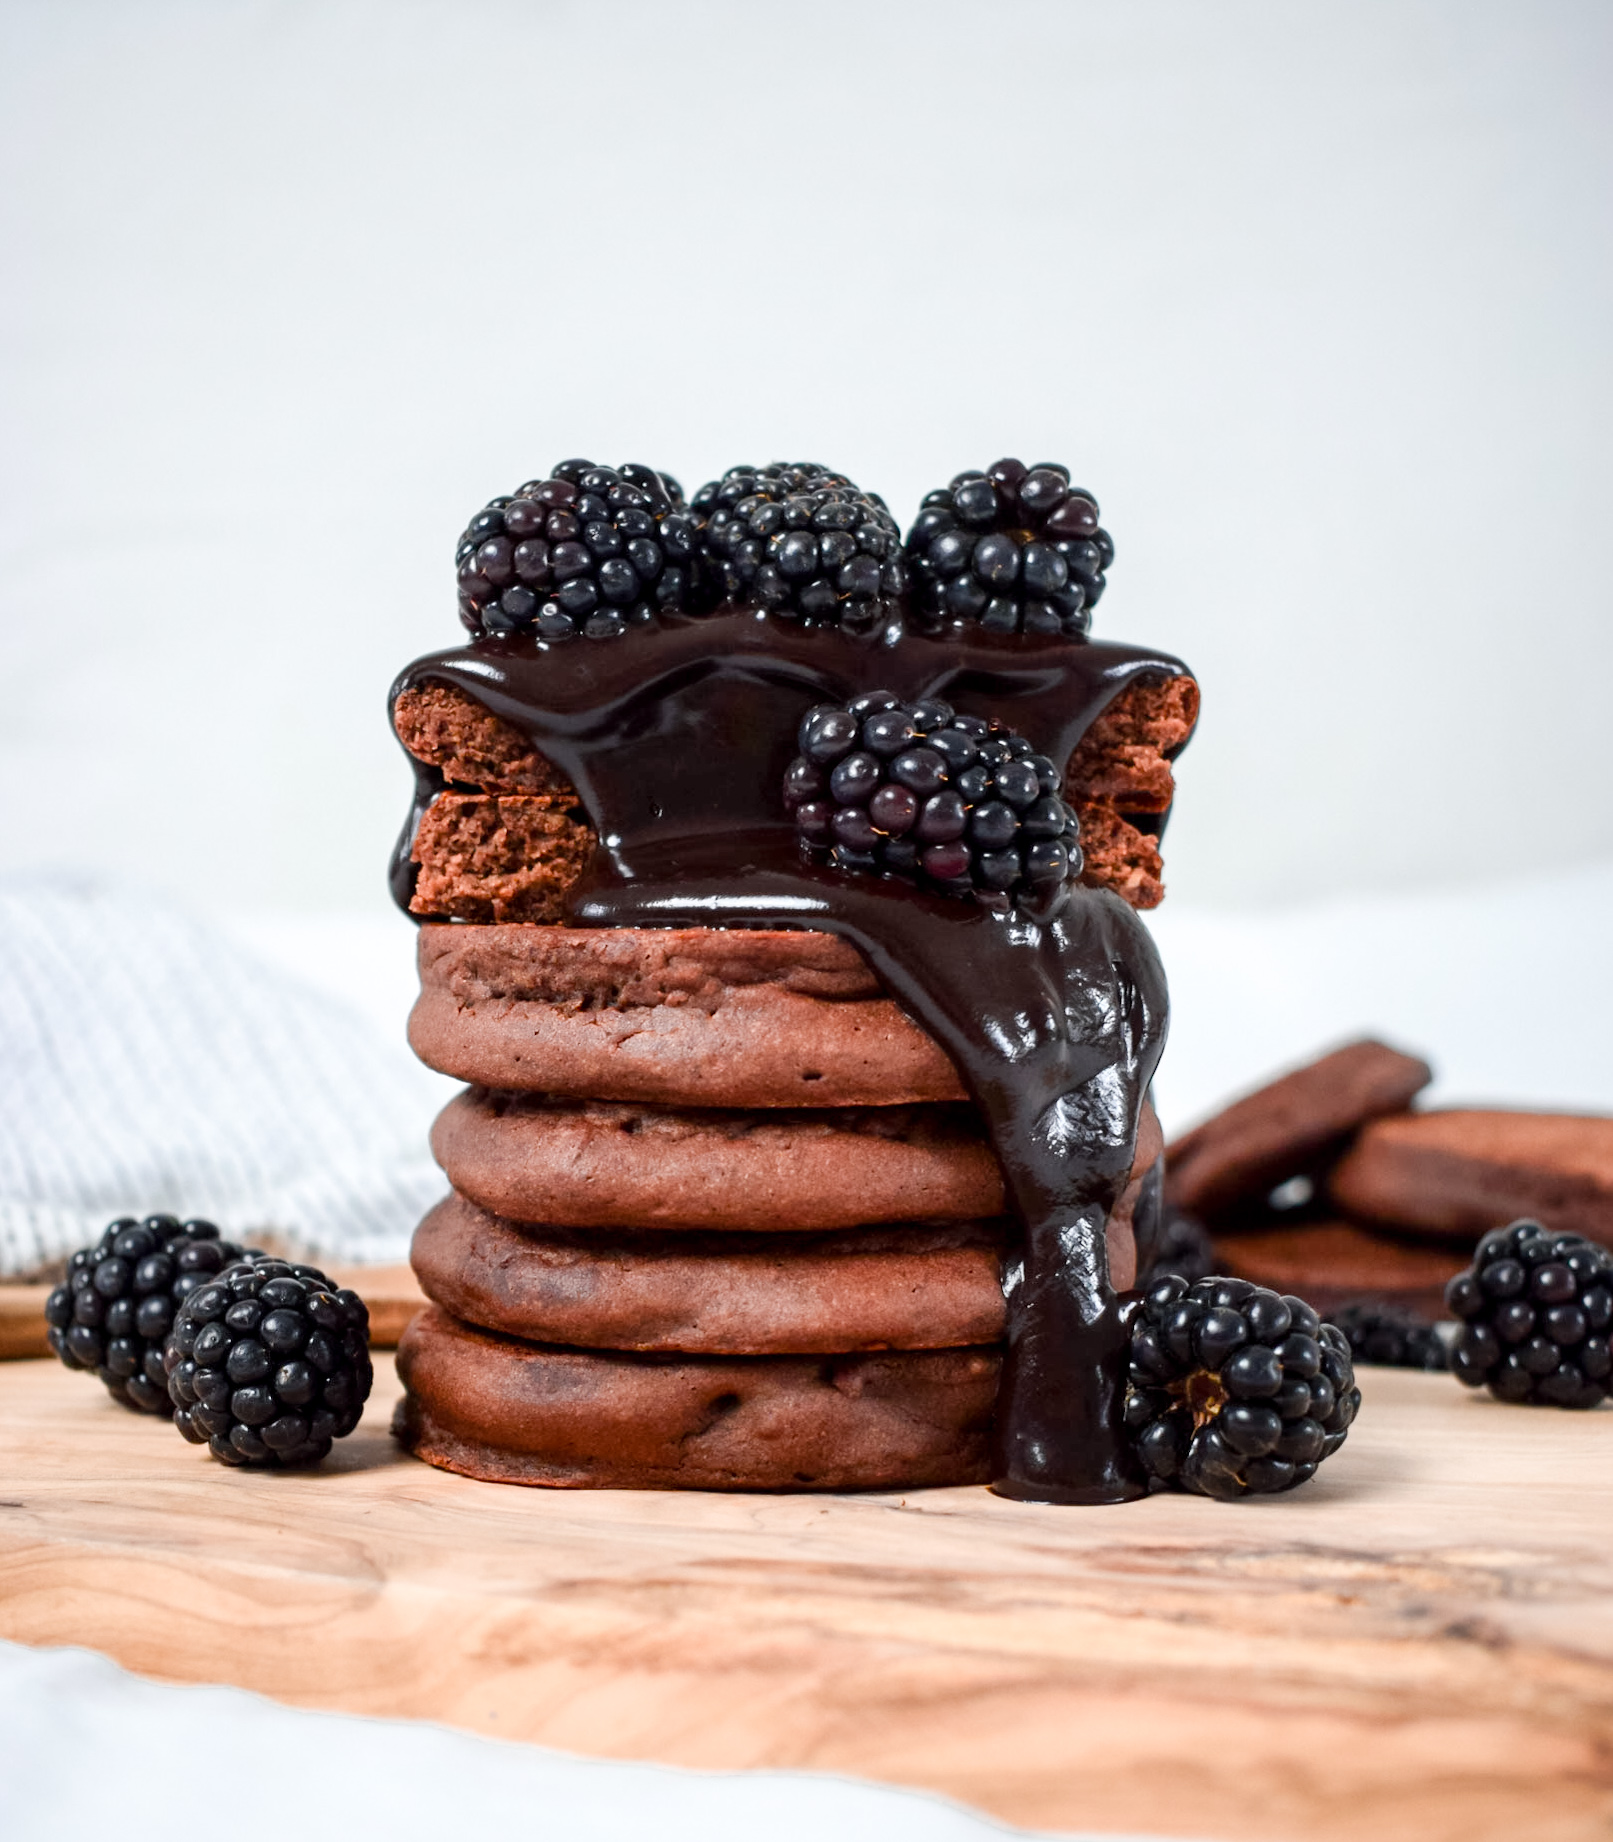 Vegan-Gluten-Free-Fluffy-Thick-Chocolate-Pancakes-Recipe-Ally-The-Earthling